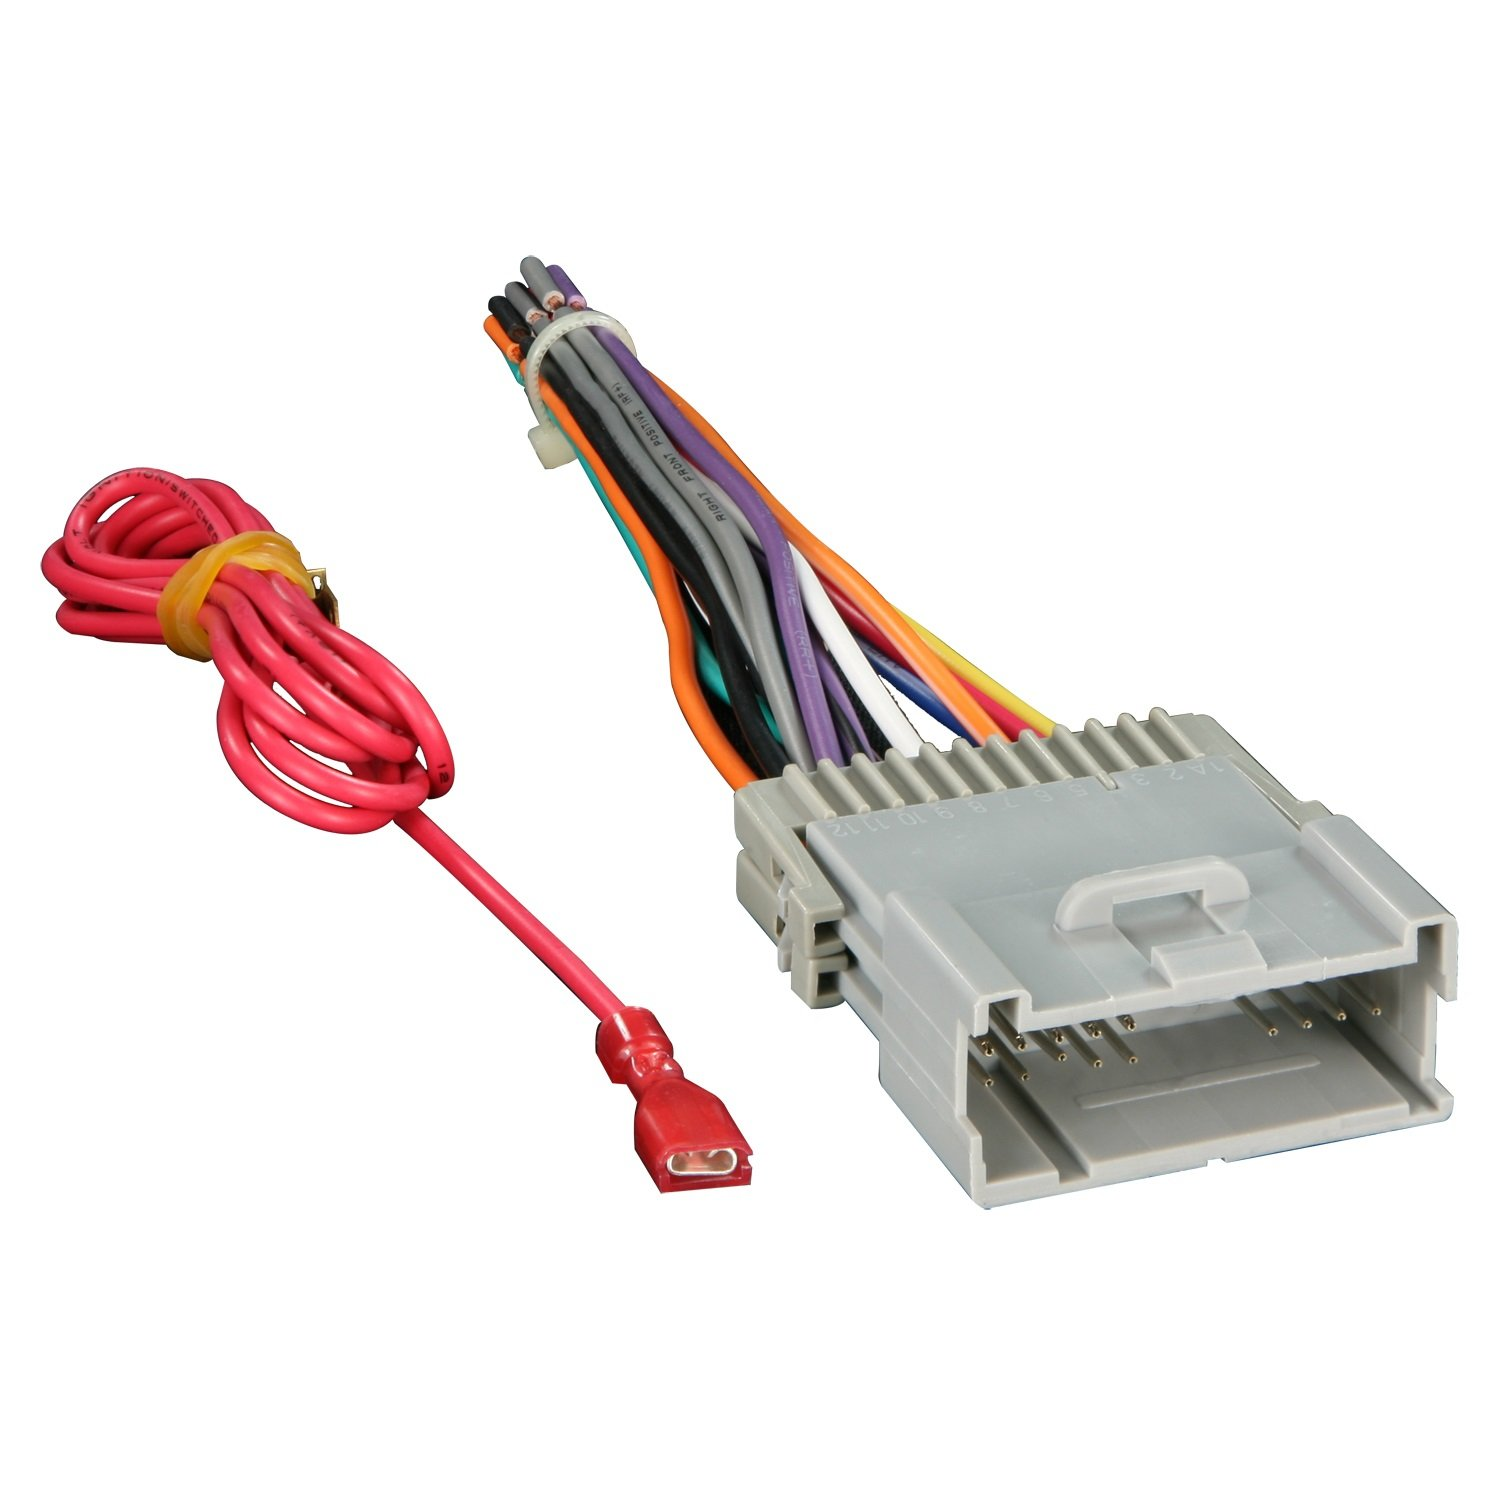 61eewxp9orL._SL1500_ amazon com metra 70 2003 radio wiring harness for gm 98 08 how to connect wiring harness to aftermarket stereo at gsmx.co